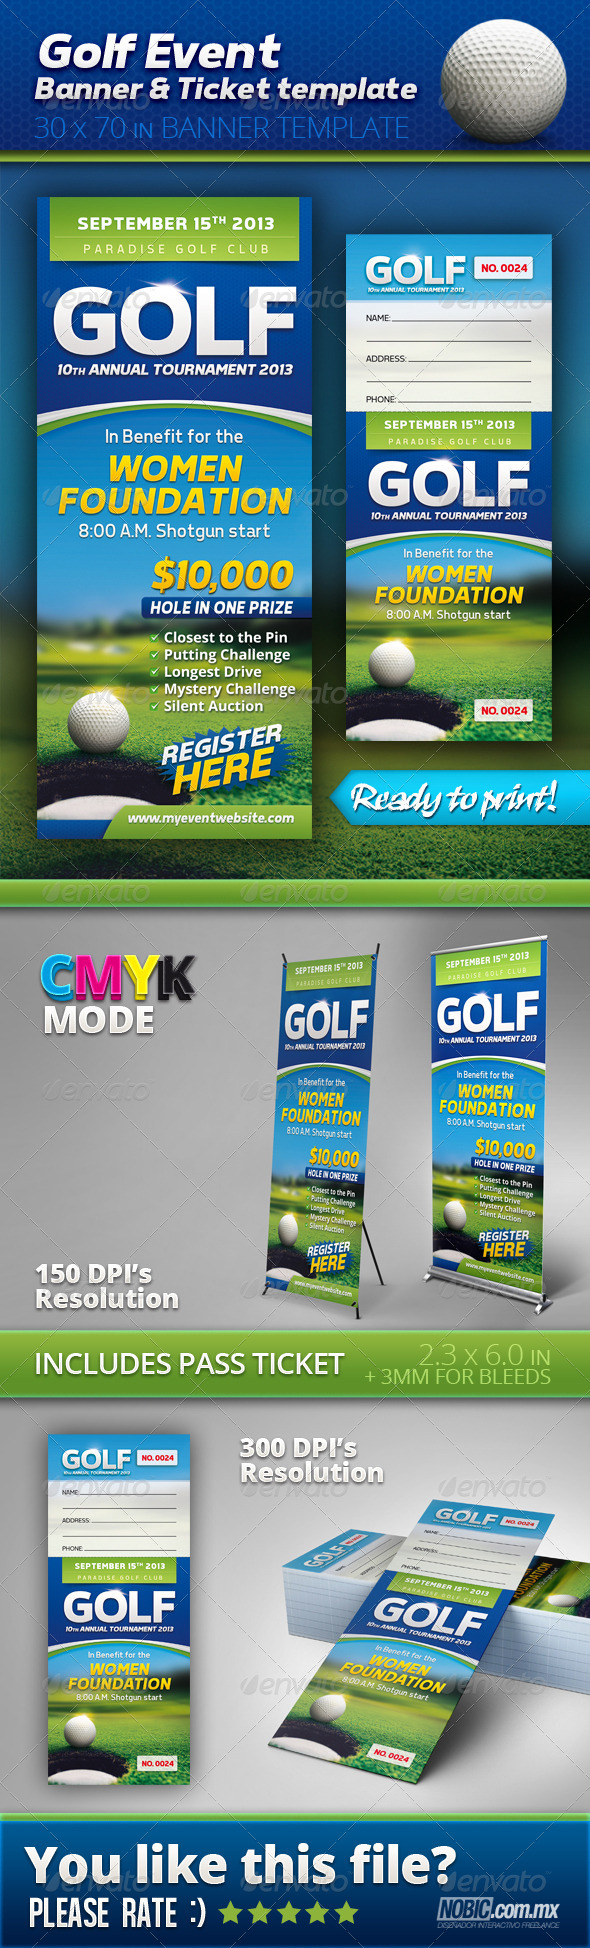 GraphicRiver Golf Event Banner and Ticket Template 4854728